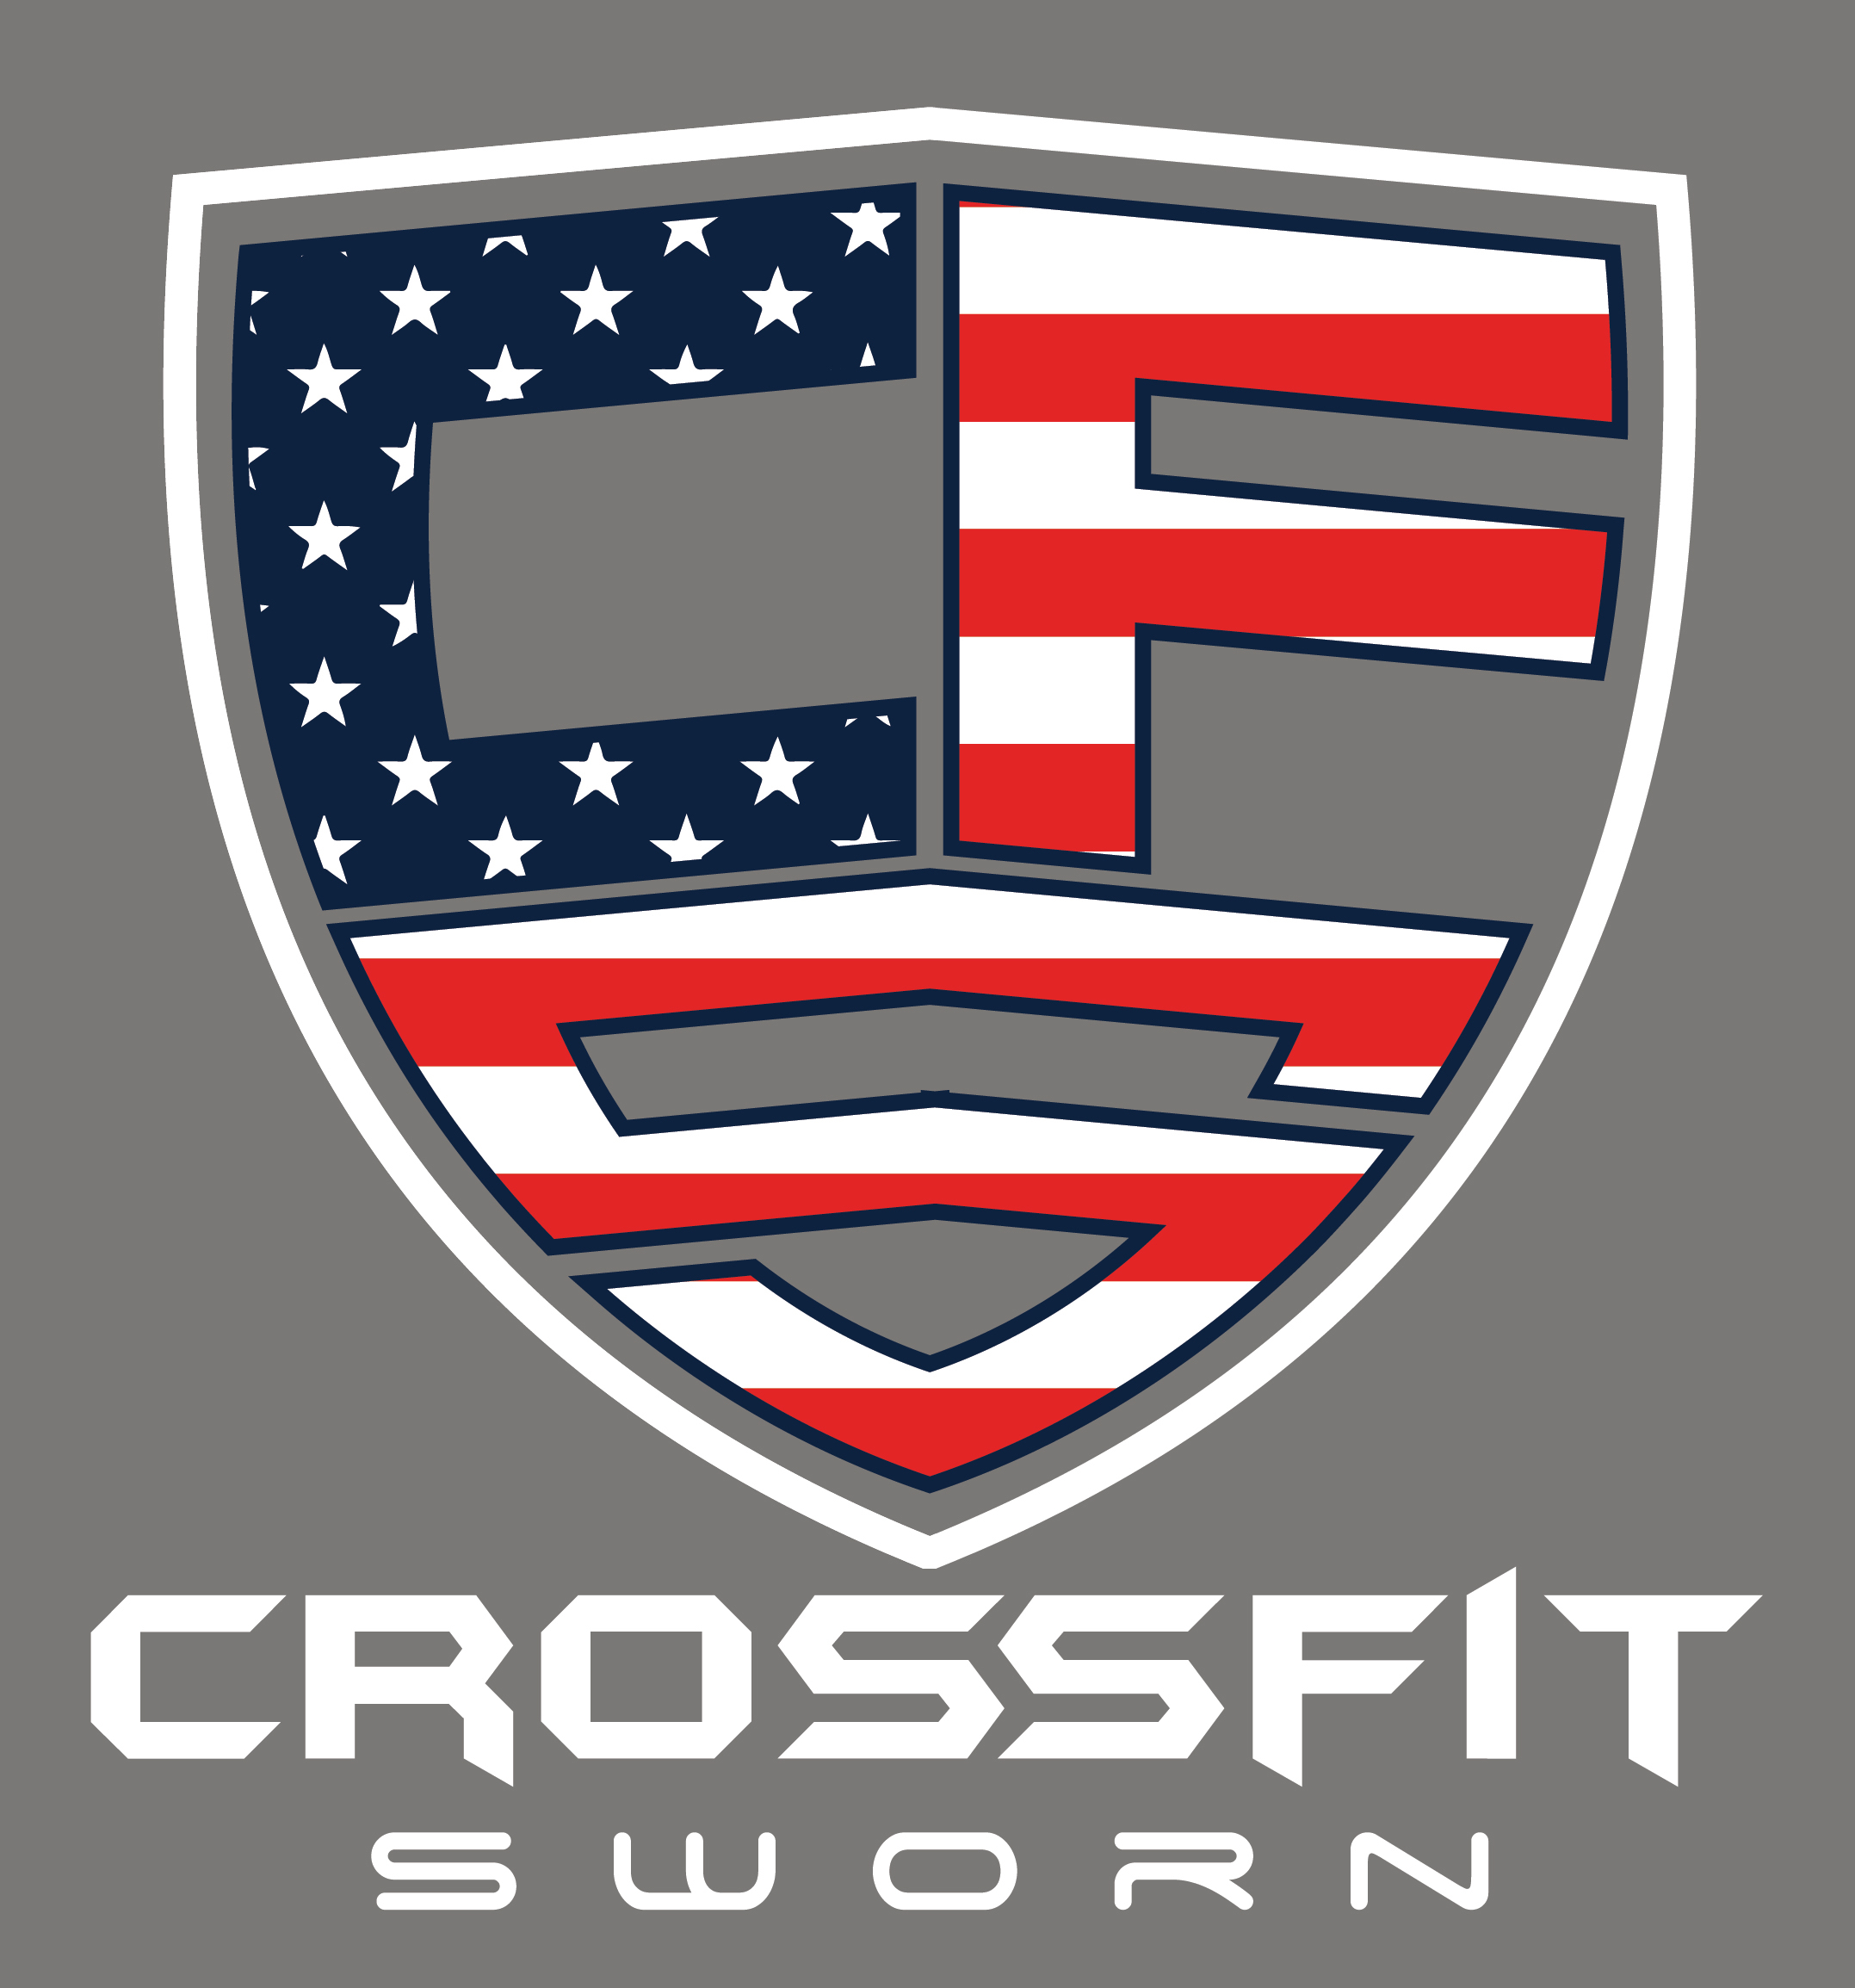 Crossfit Sworn logo